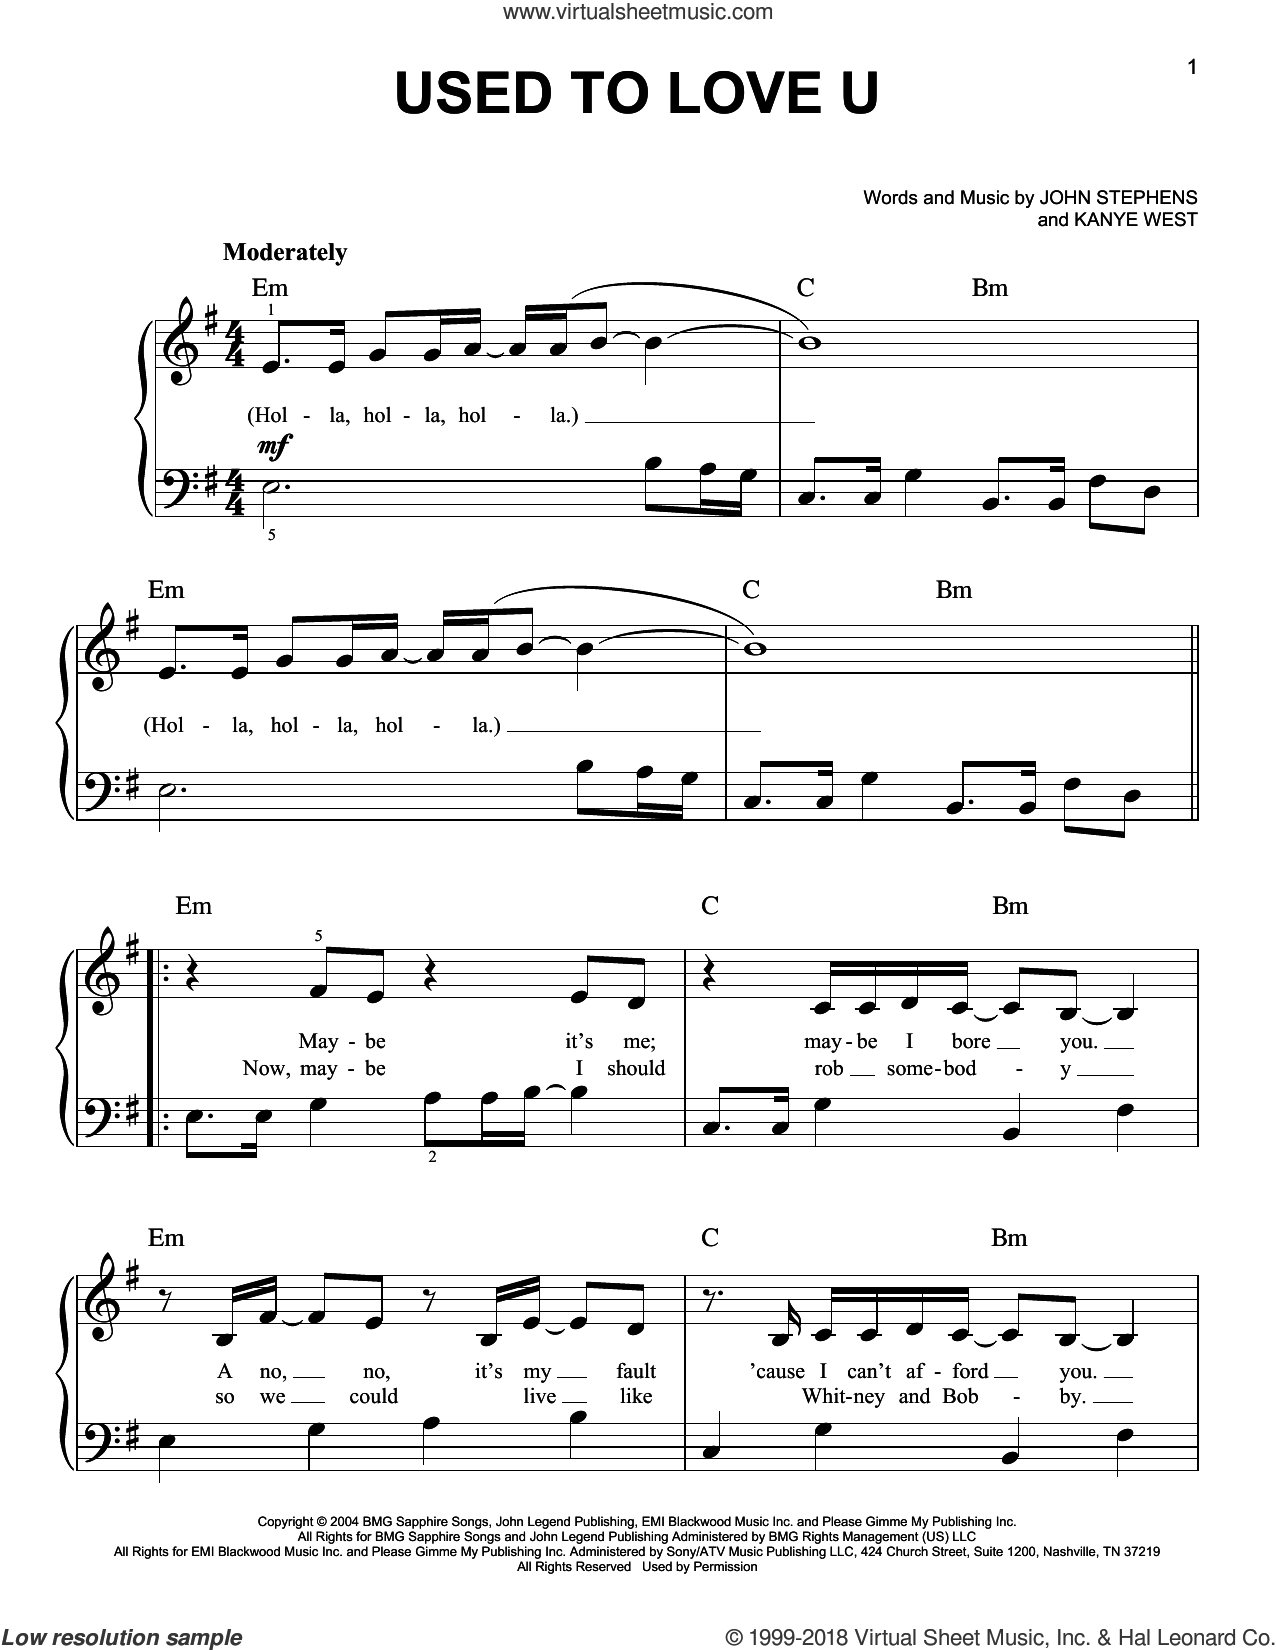 Used To Love U sheet music for piano solo by Kanye West